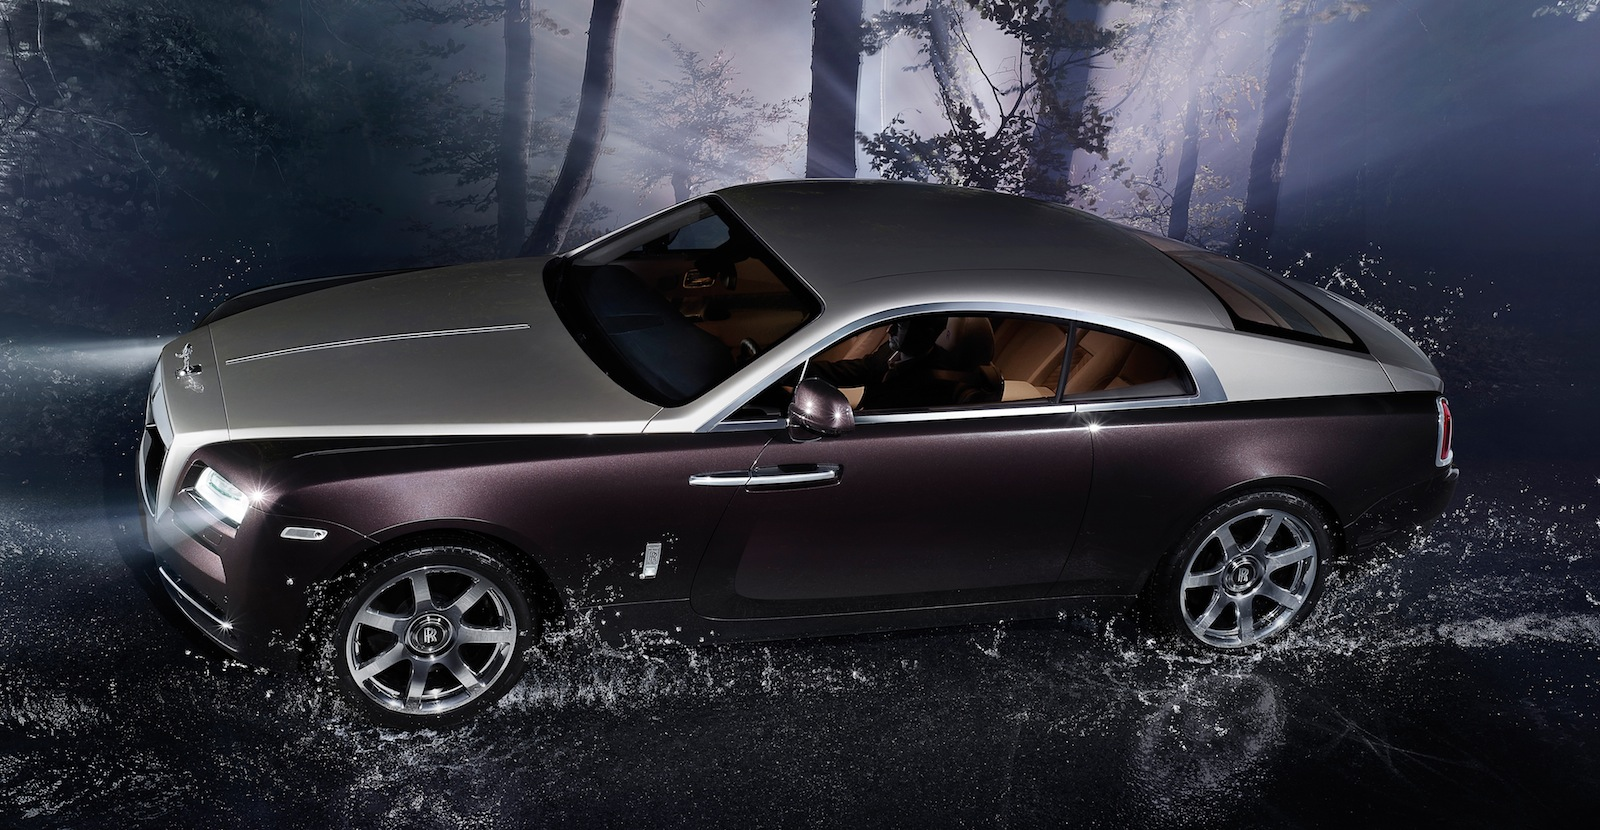 Toyota Supra 2015 Price >> Rolls-Royce Wraith: $645K price tag to match Ghost in ...